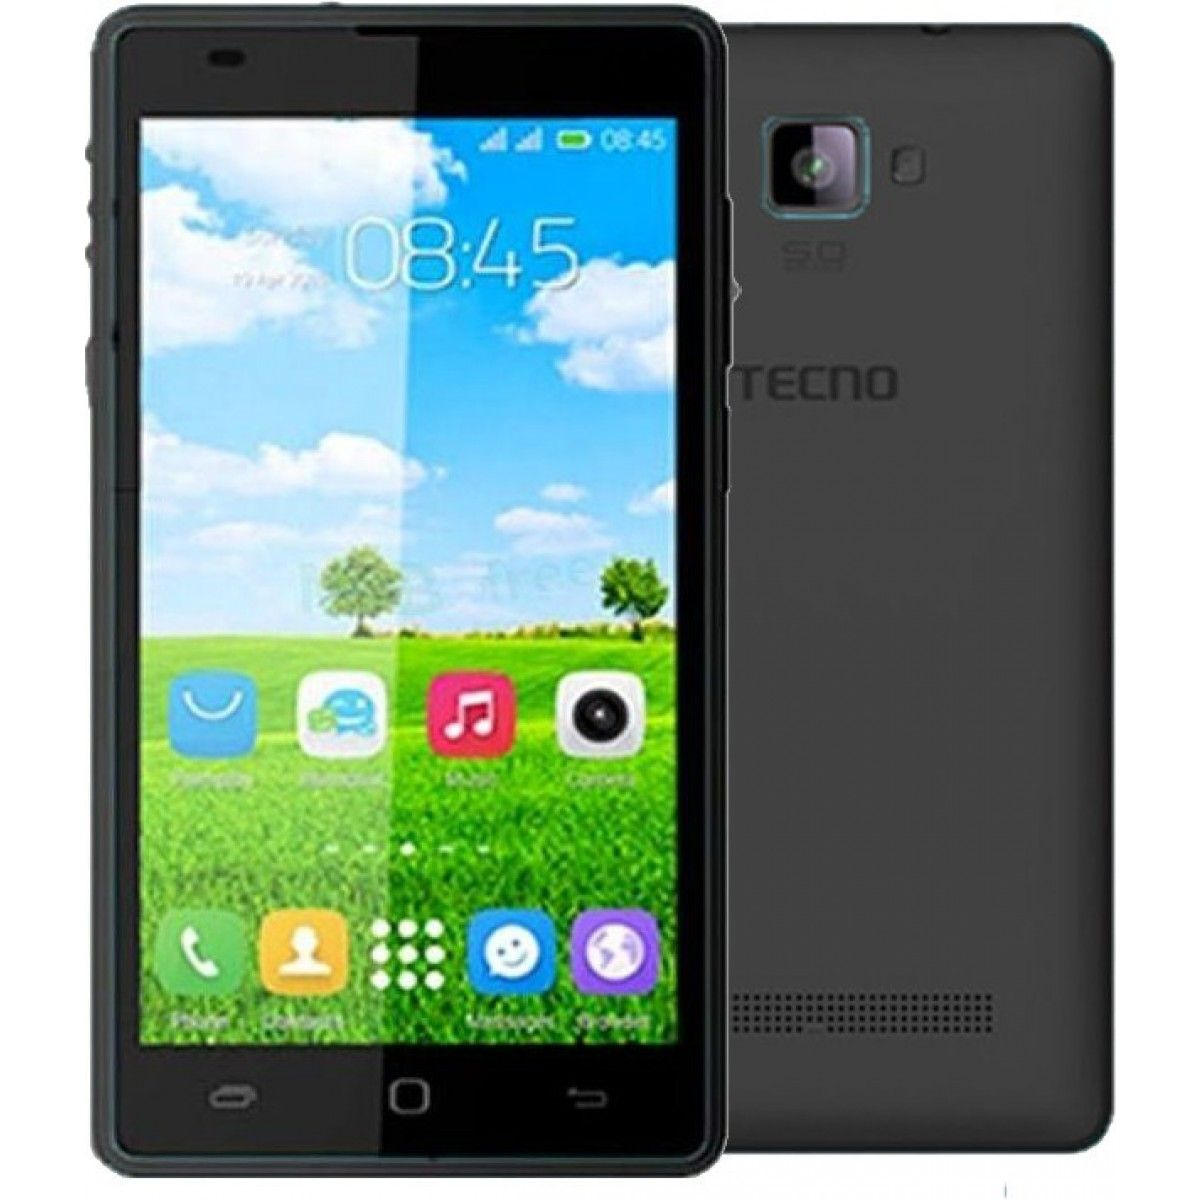 Tecno Y6 Android Price in Nigeria | RegalBuyer | Phones for